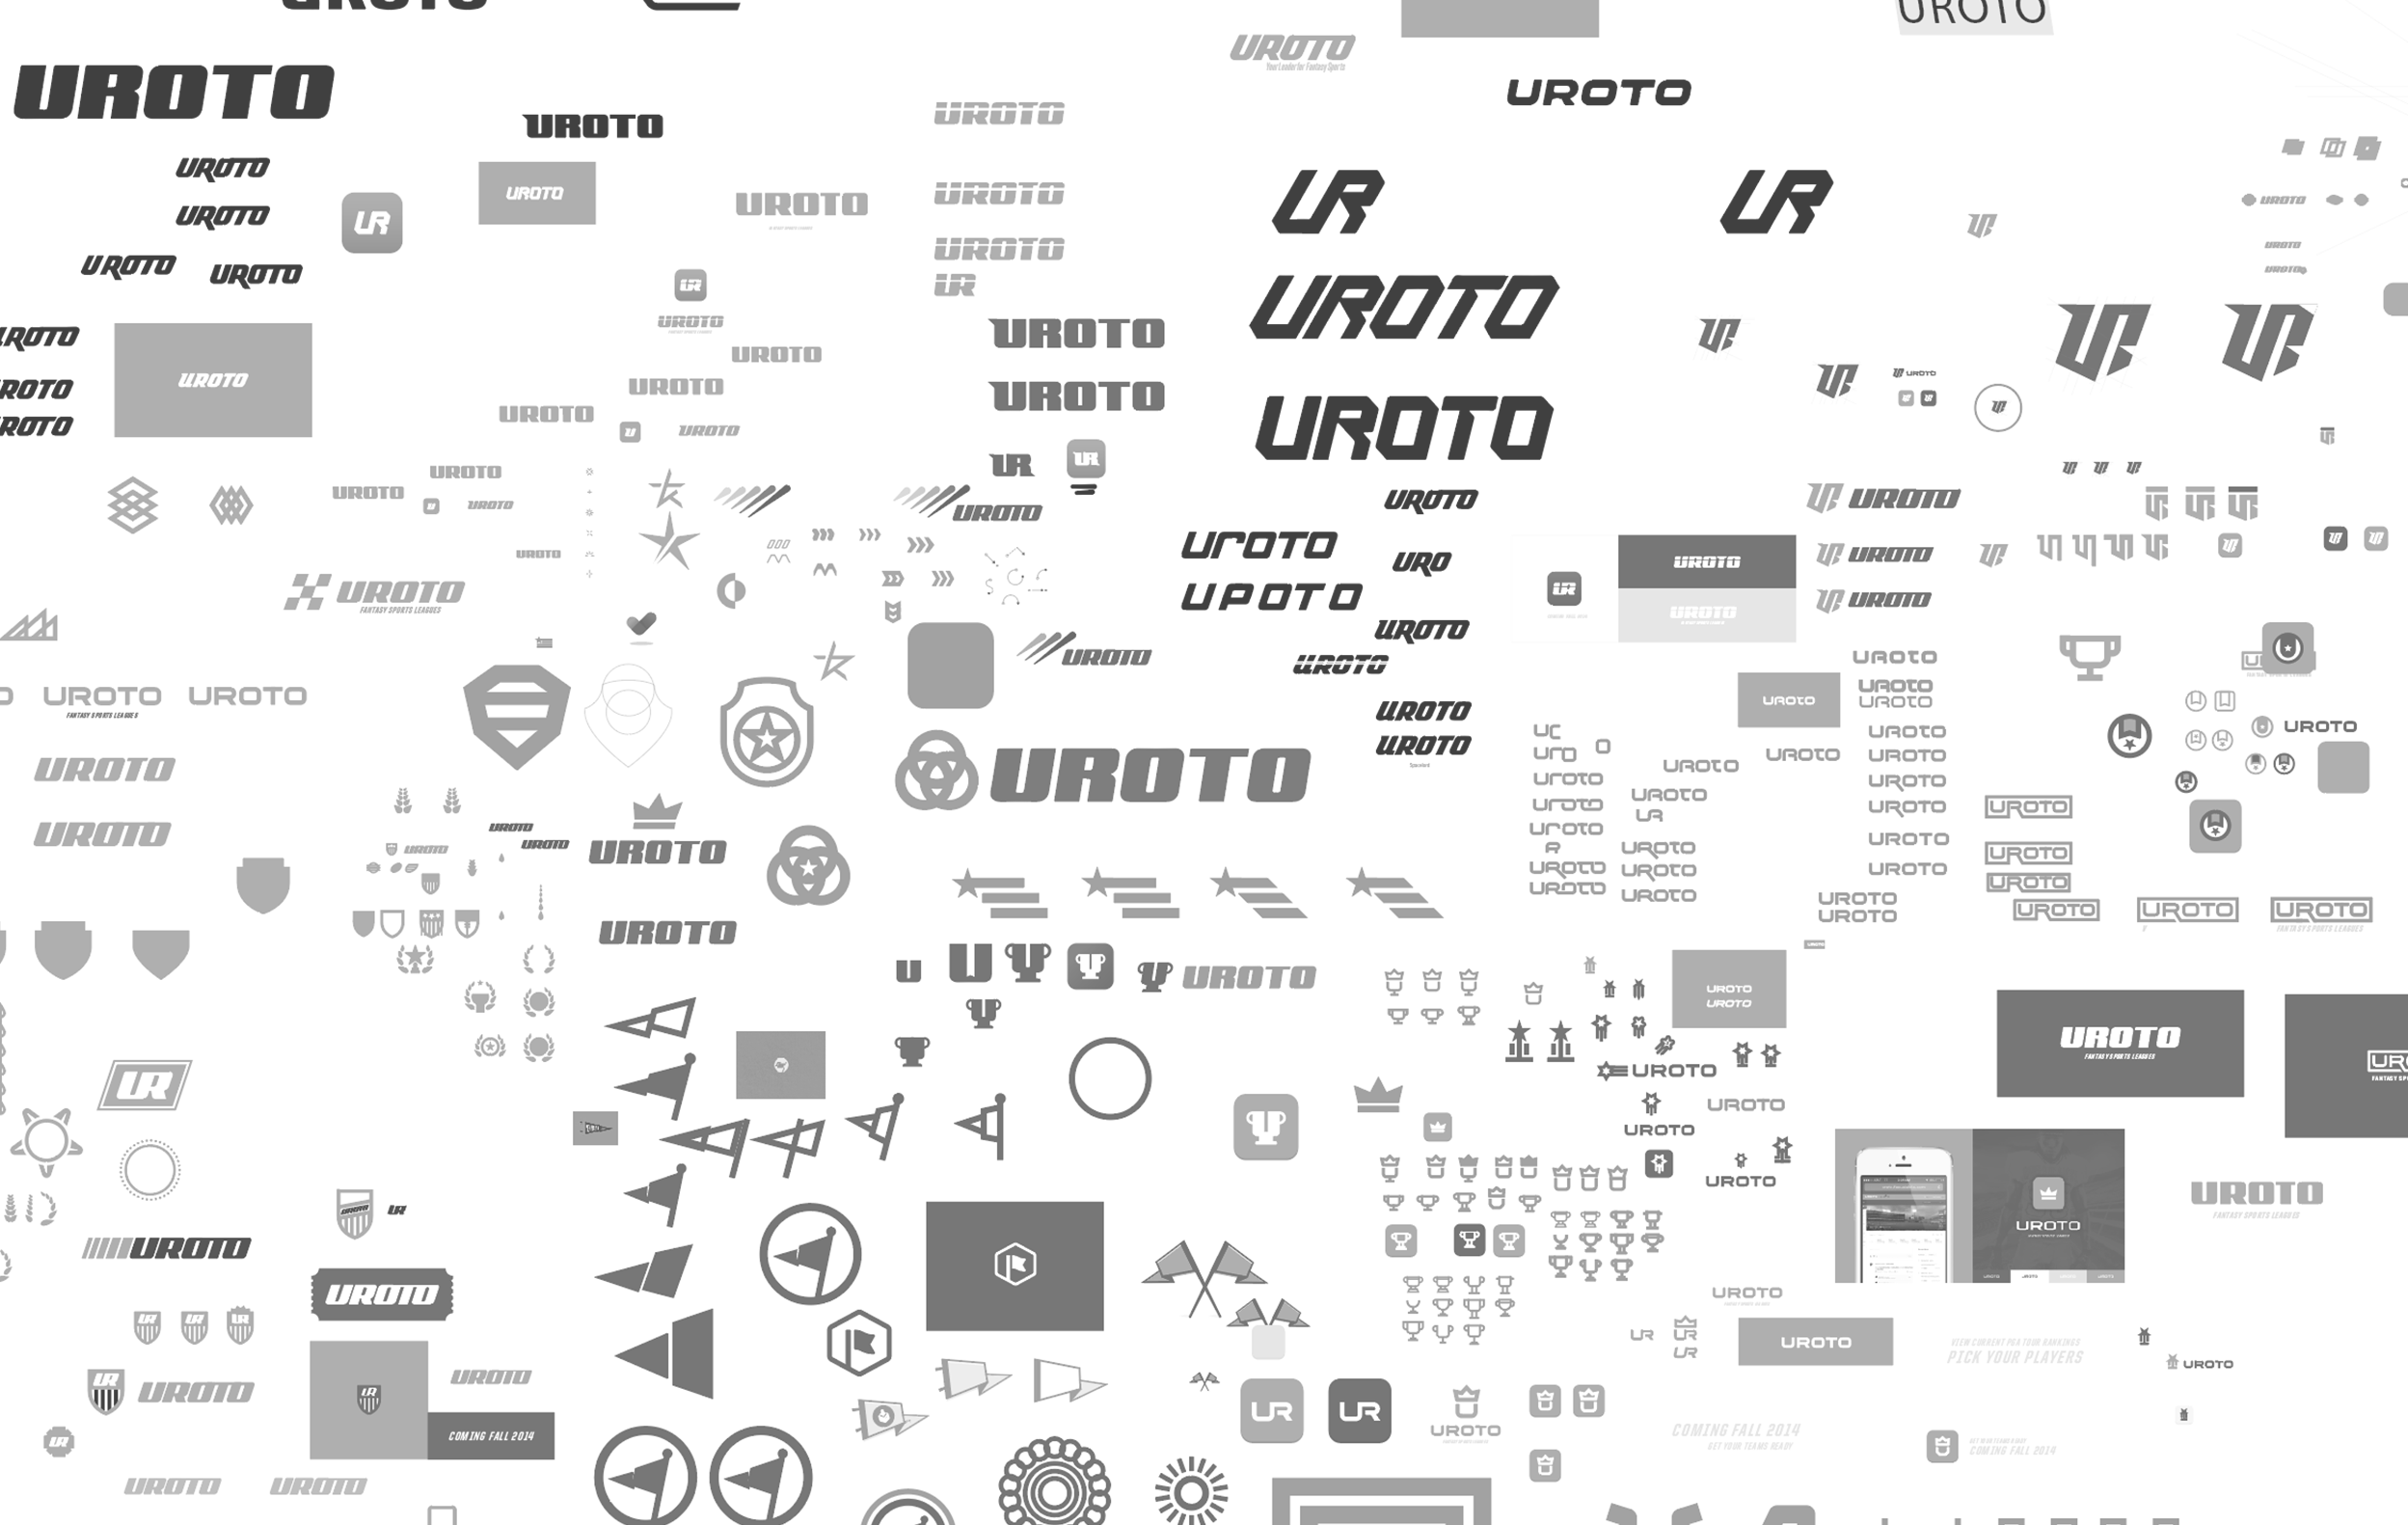 uRoto_Screenshot